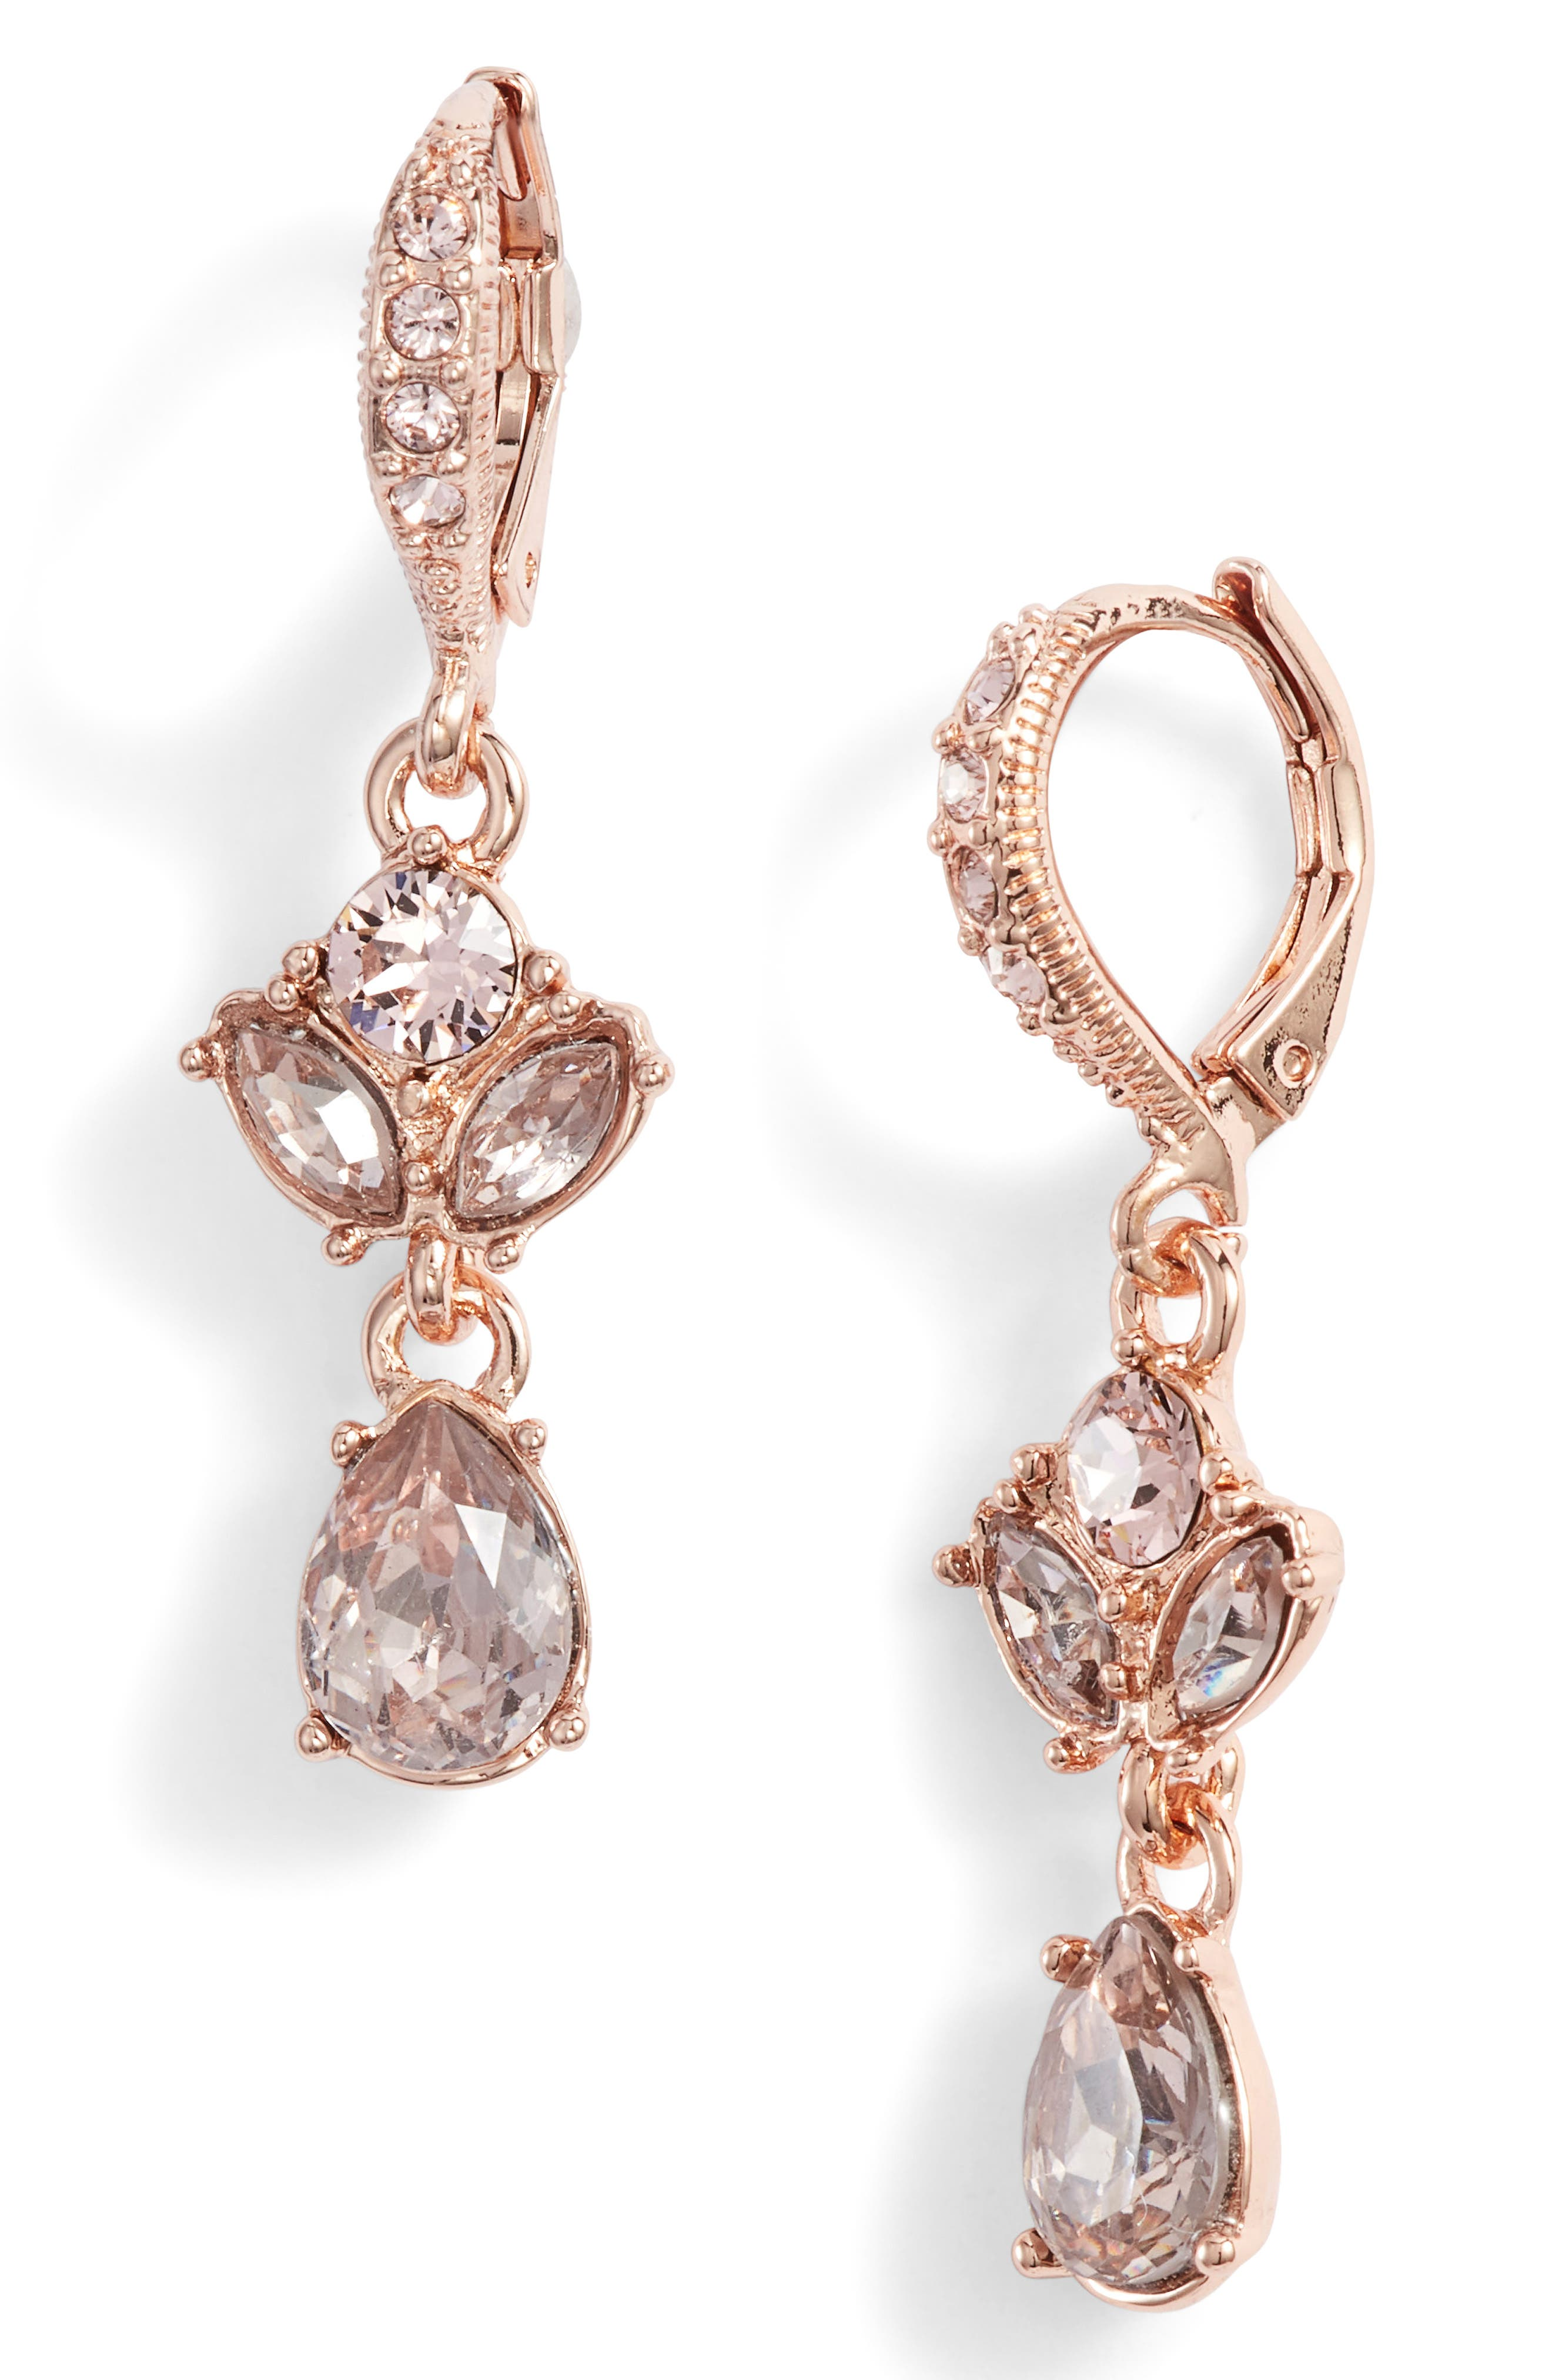 Small Crystal Drop Earrings,                             Main thumbnail 1, color,                             ROSE GOLD